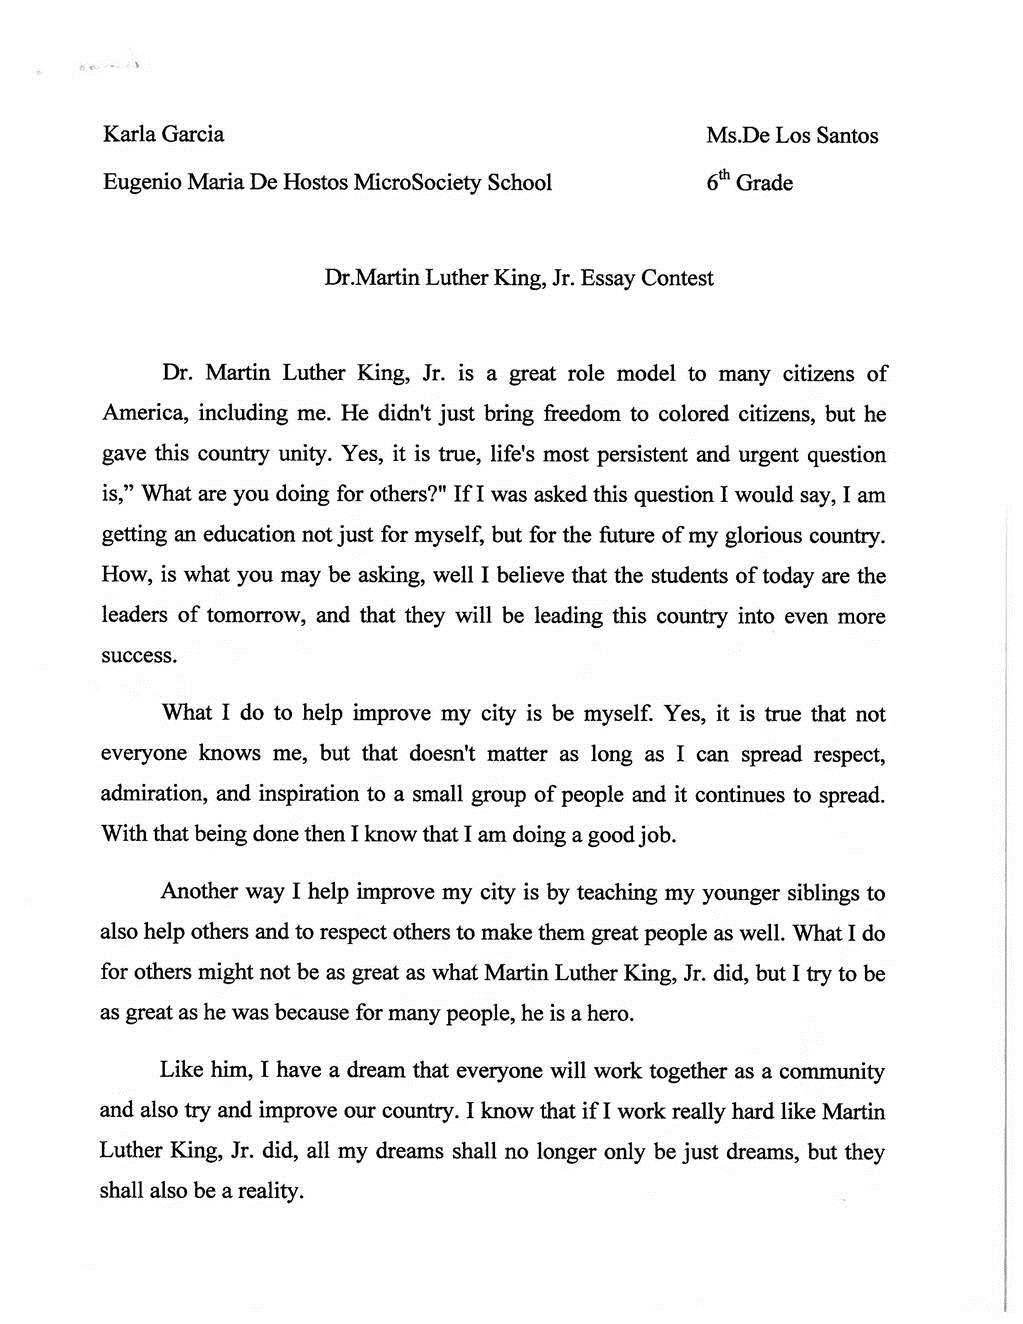 essay about oedipus the king othello literary essay othello essay  essays about martin luther king jr an essay on martin luther king essays about martin luther